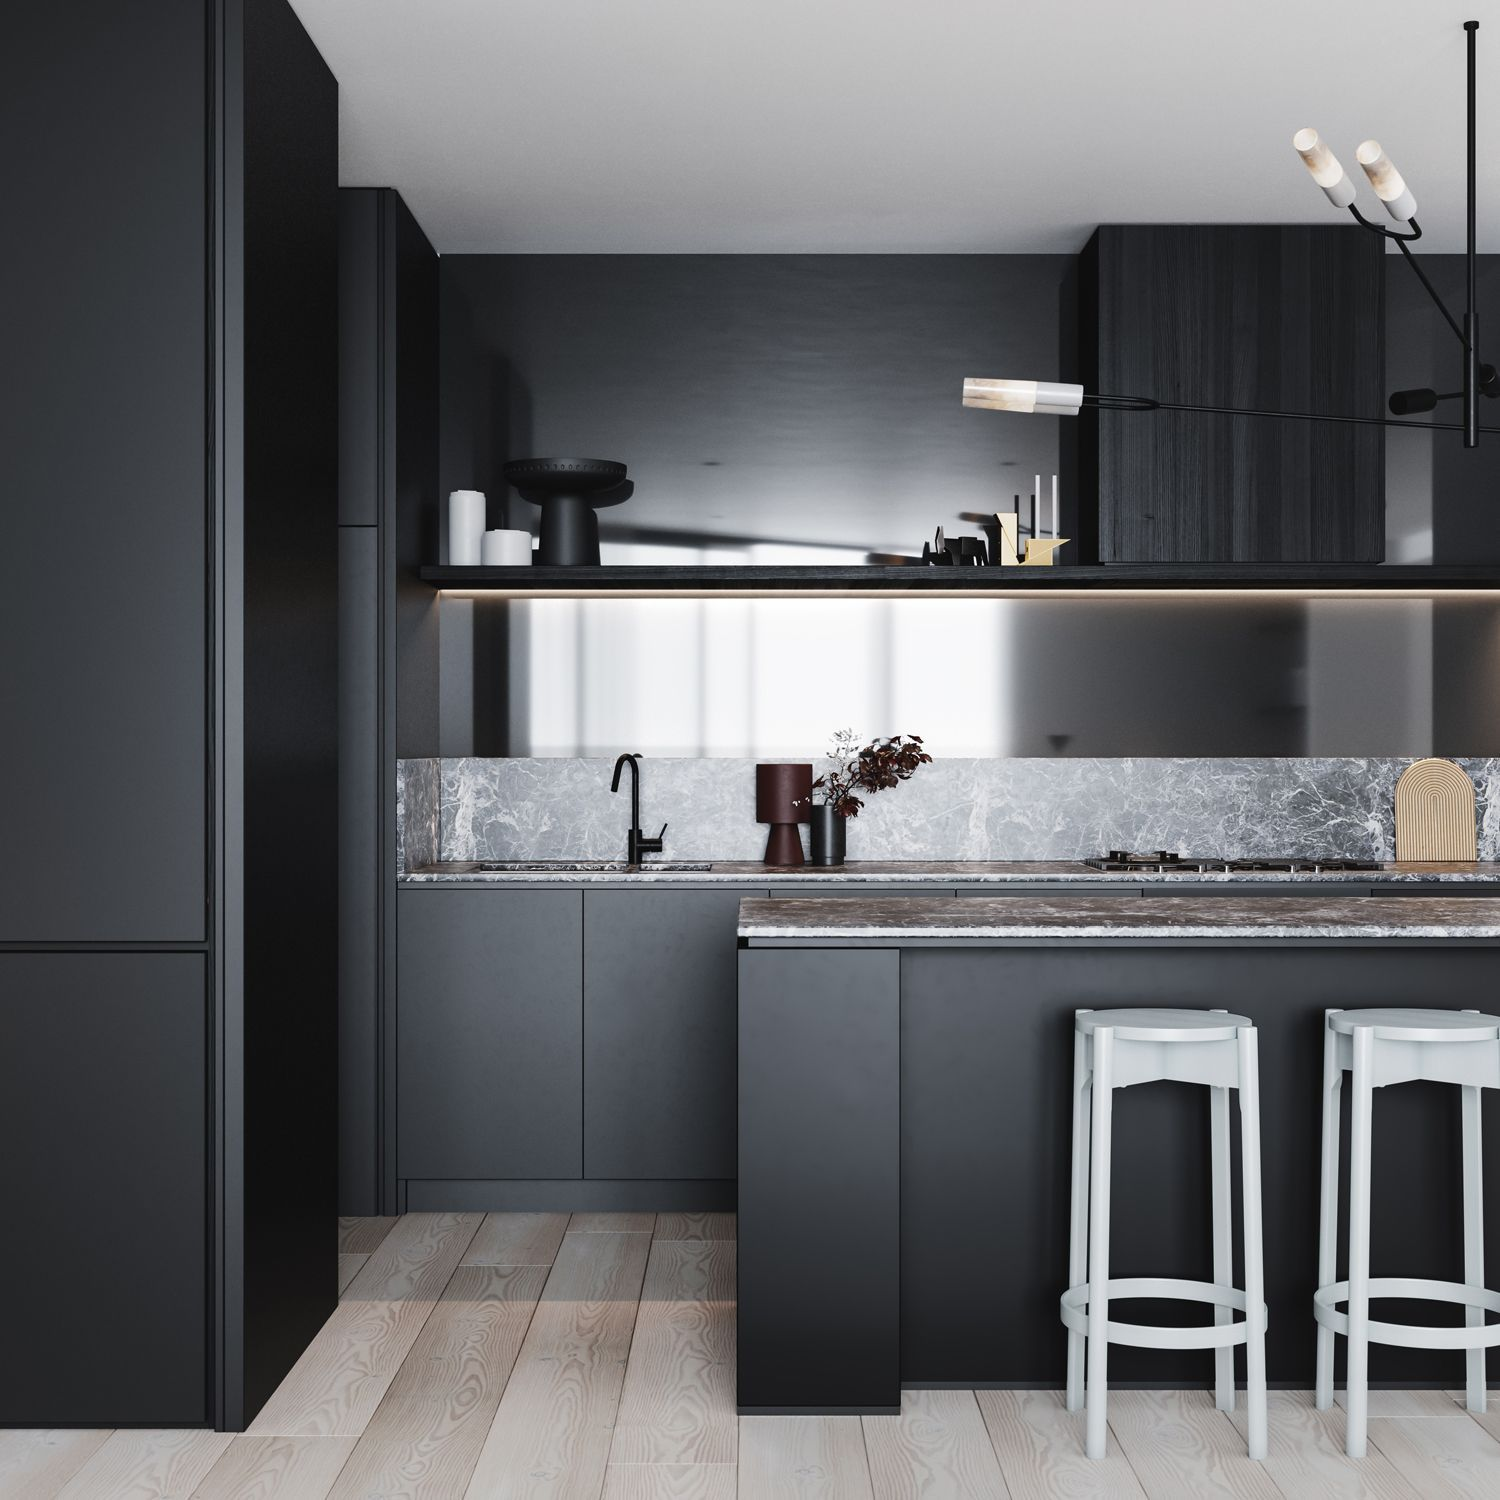 All Black Kitchen With Seamless Built In Cabinetry And Appliances